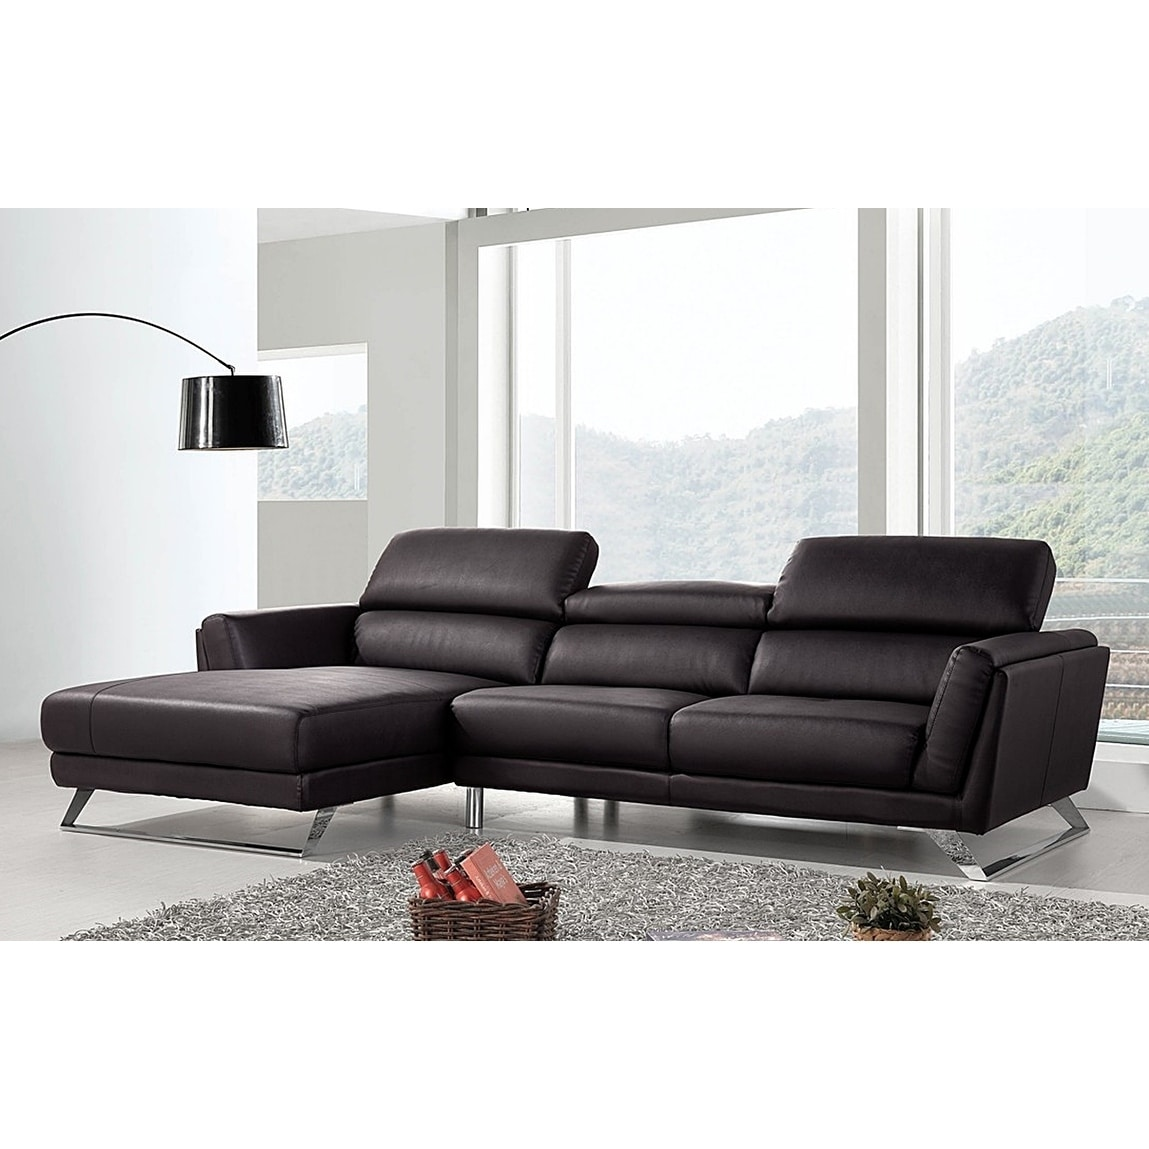 Waldorf Modern Black Leather L Shaped Sofa With Adjule Headrests On Free Shipping Today 20234845